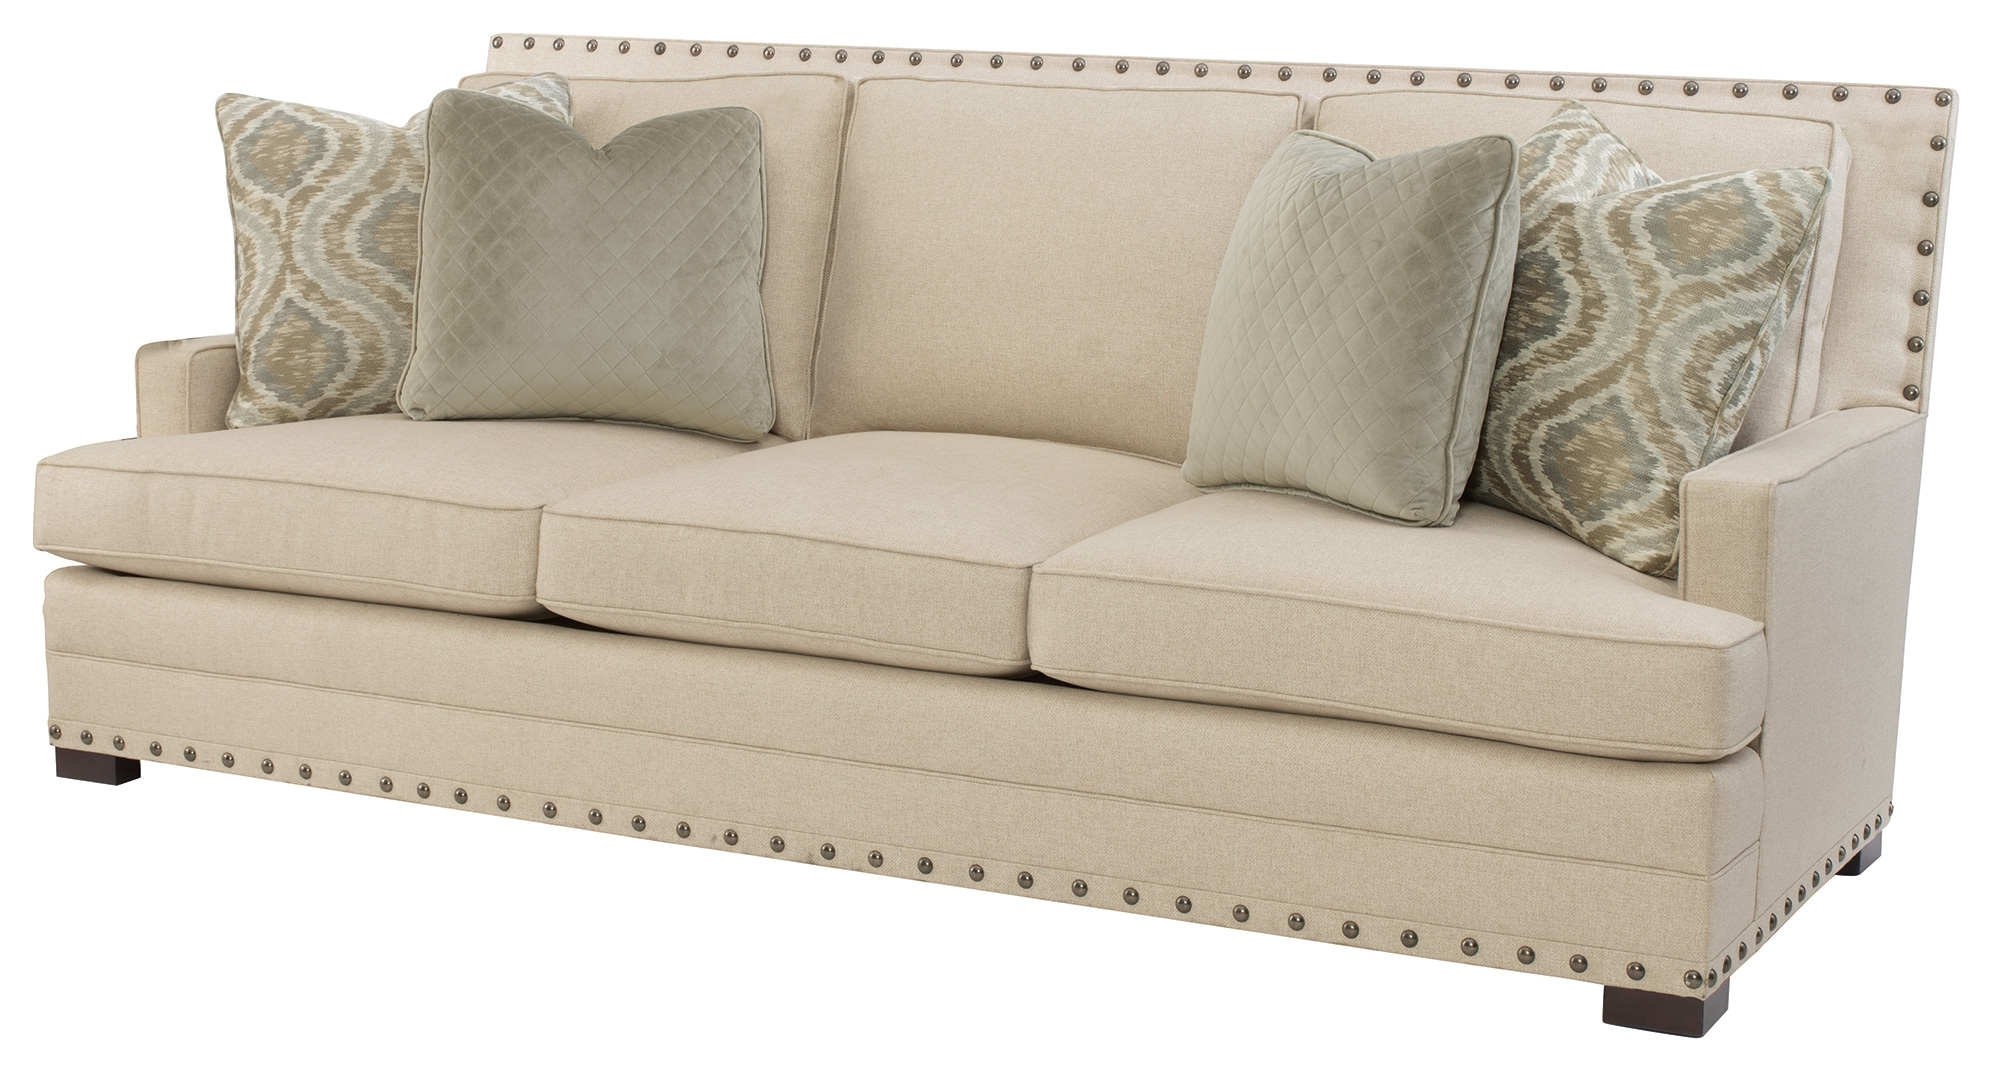 Fashionable Sectional Sofas With Nailheads With Regard To Home Decor Blog: Nailhead Trim: Then And Today (View 14 of 20)